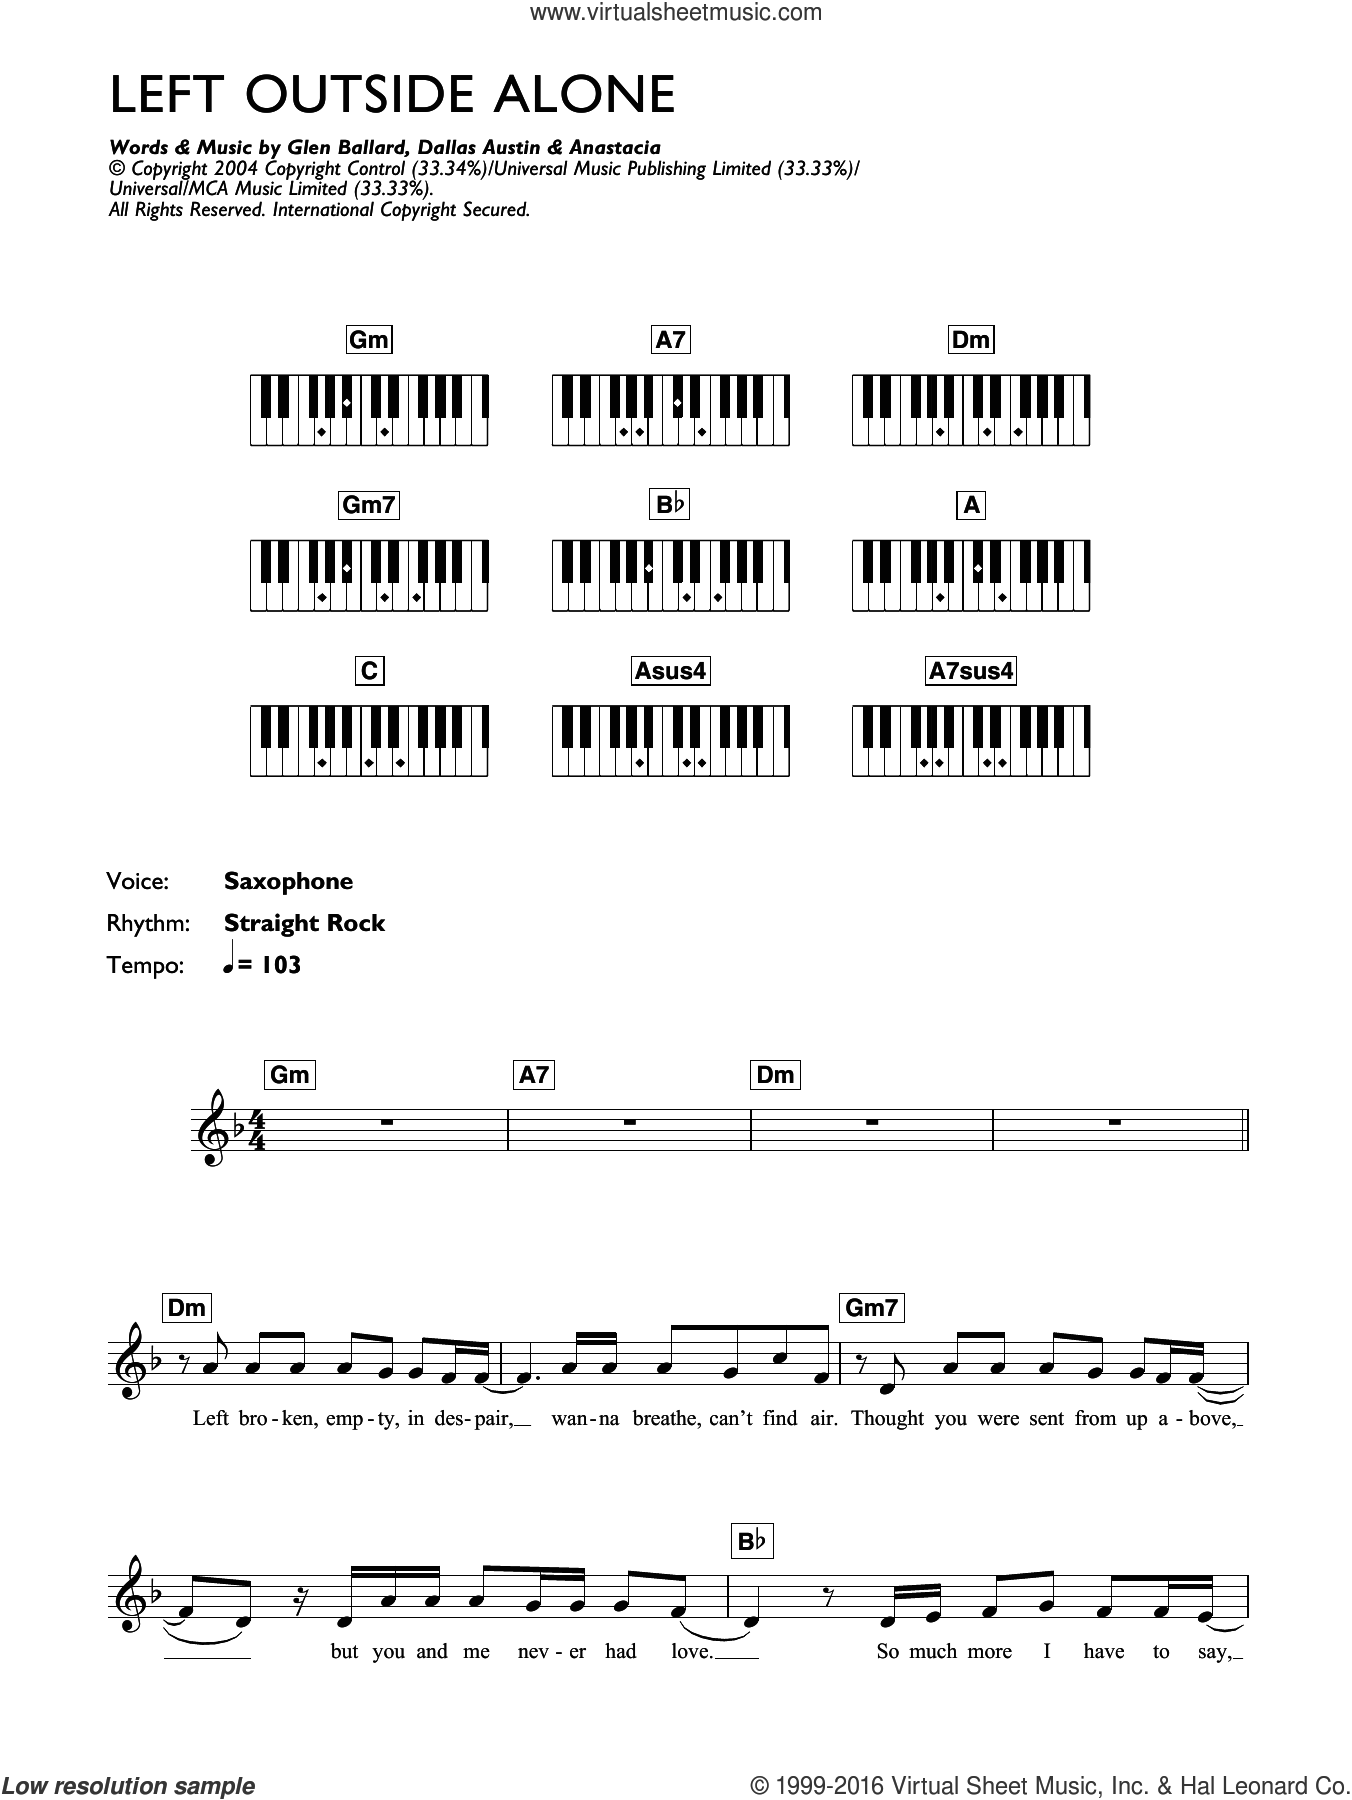 Left Outside Alone sheet music for piano solo (chords, lyrics, melody) by Anastacia, Dallas Austin and Glen Ballard, intermediate piano (chords, lyrics, melody)